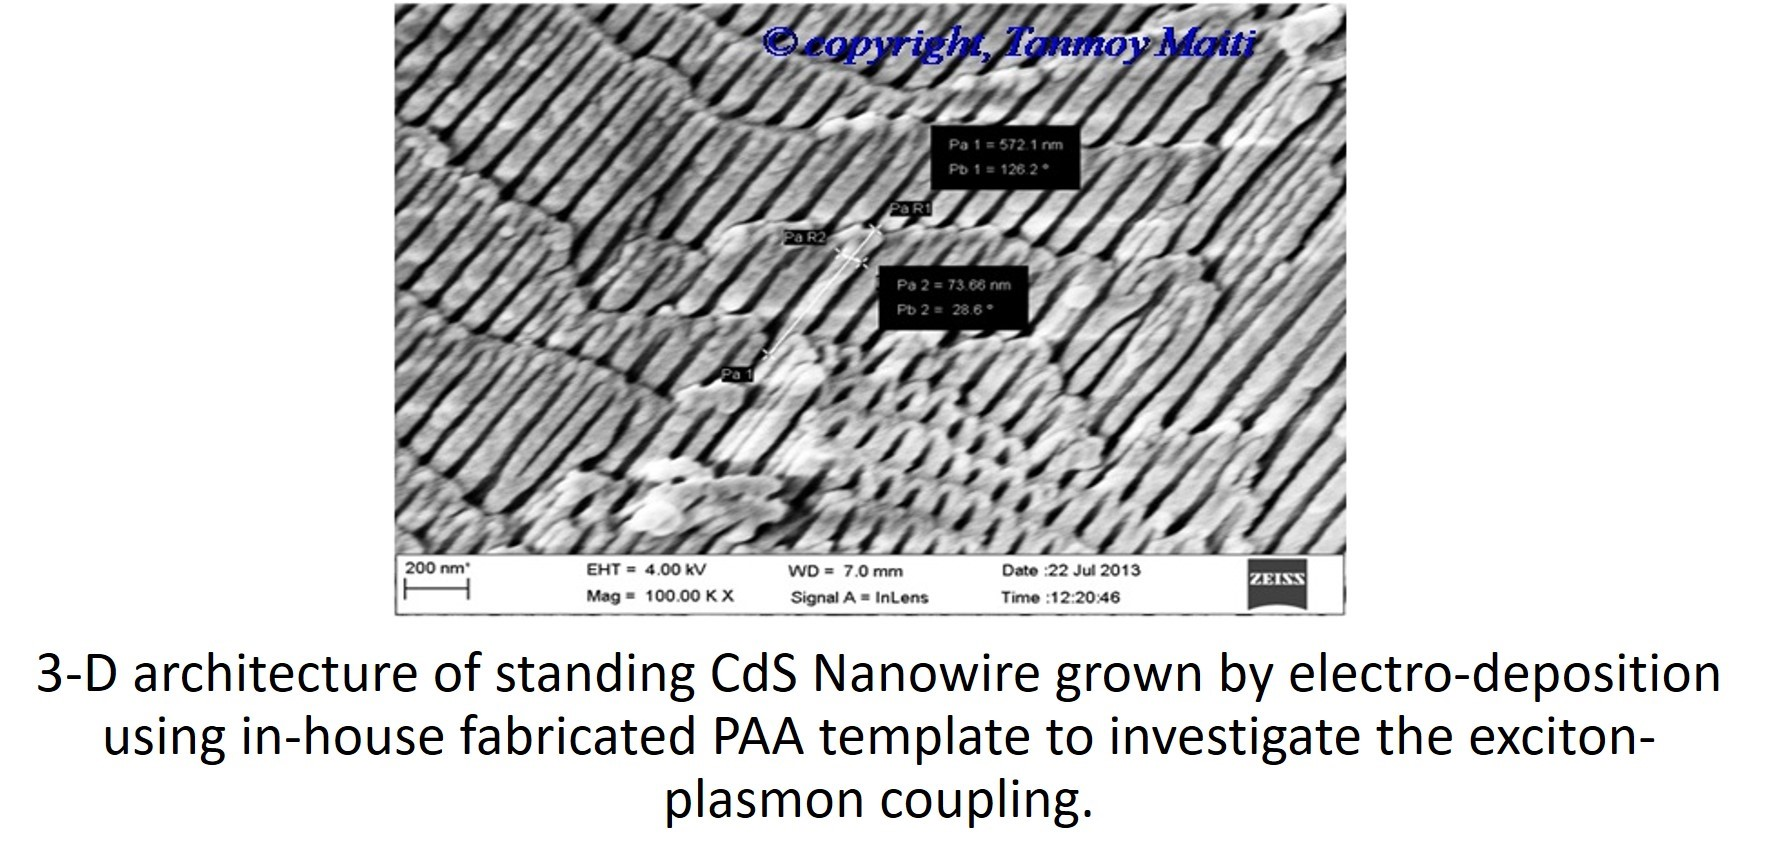 plasmonic solar cell thesis This thesis explores the use of plasmonic nanovoids for enhancing the  novel cell geometries are developed for both organic and amorphous silicon solar cell .